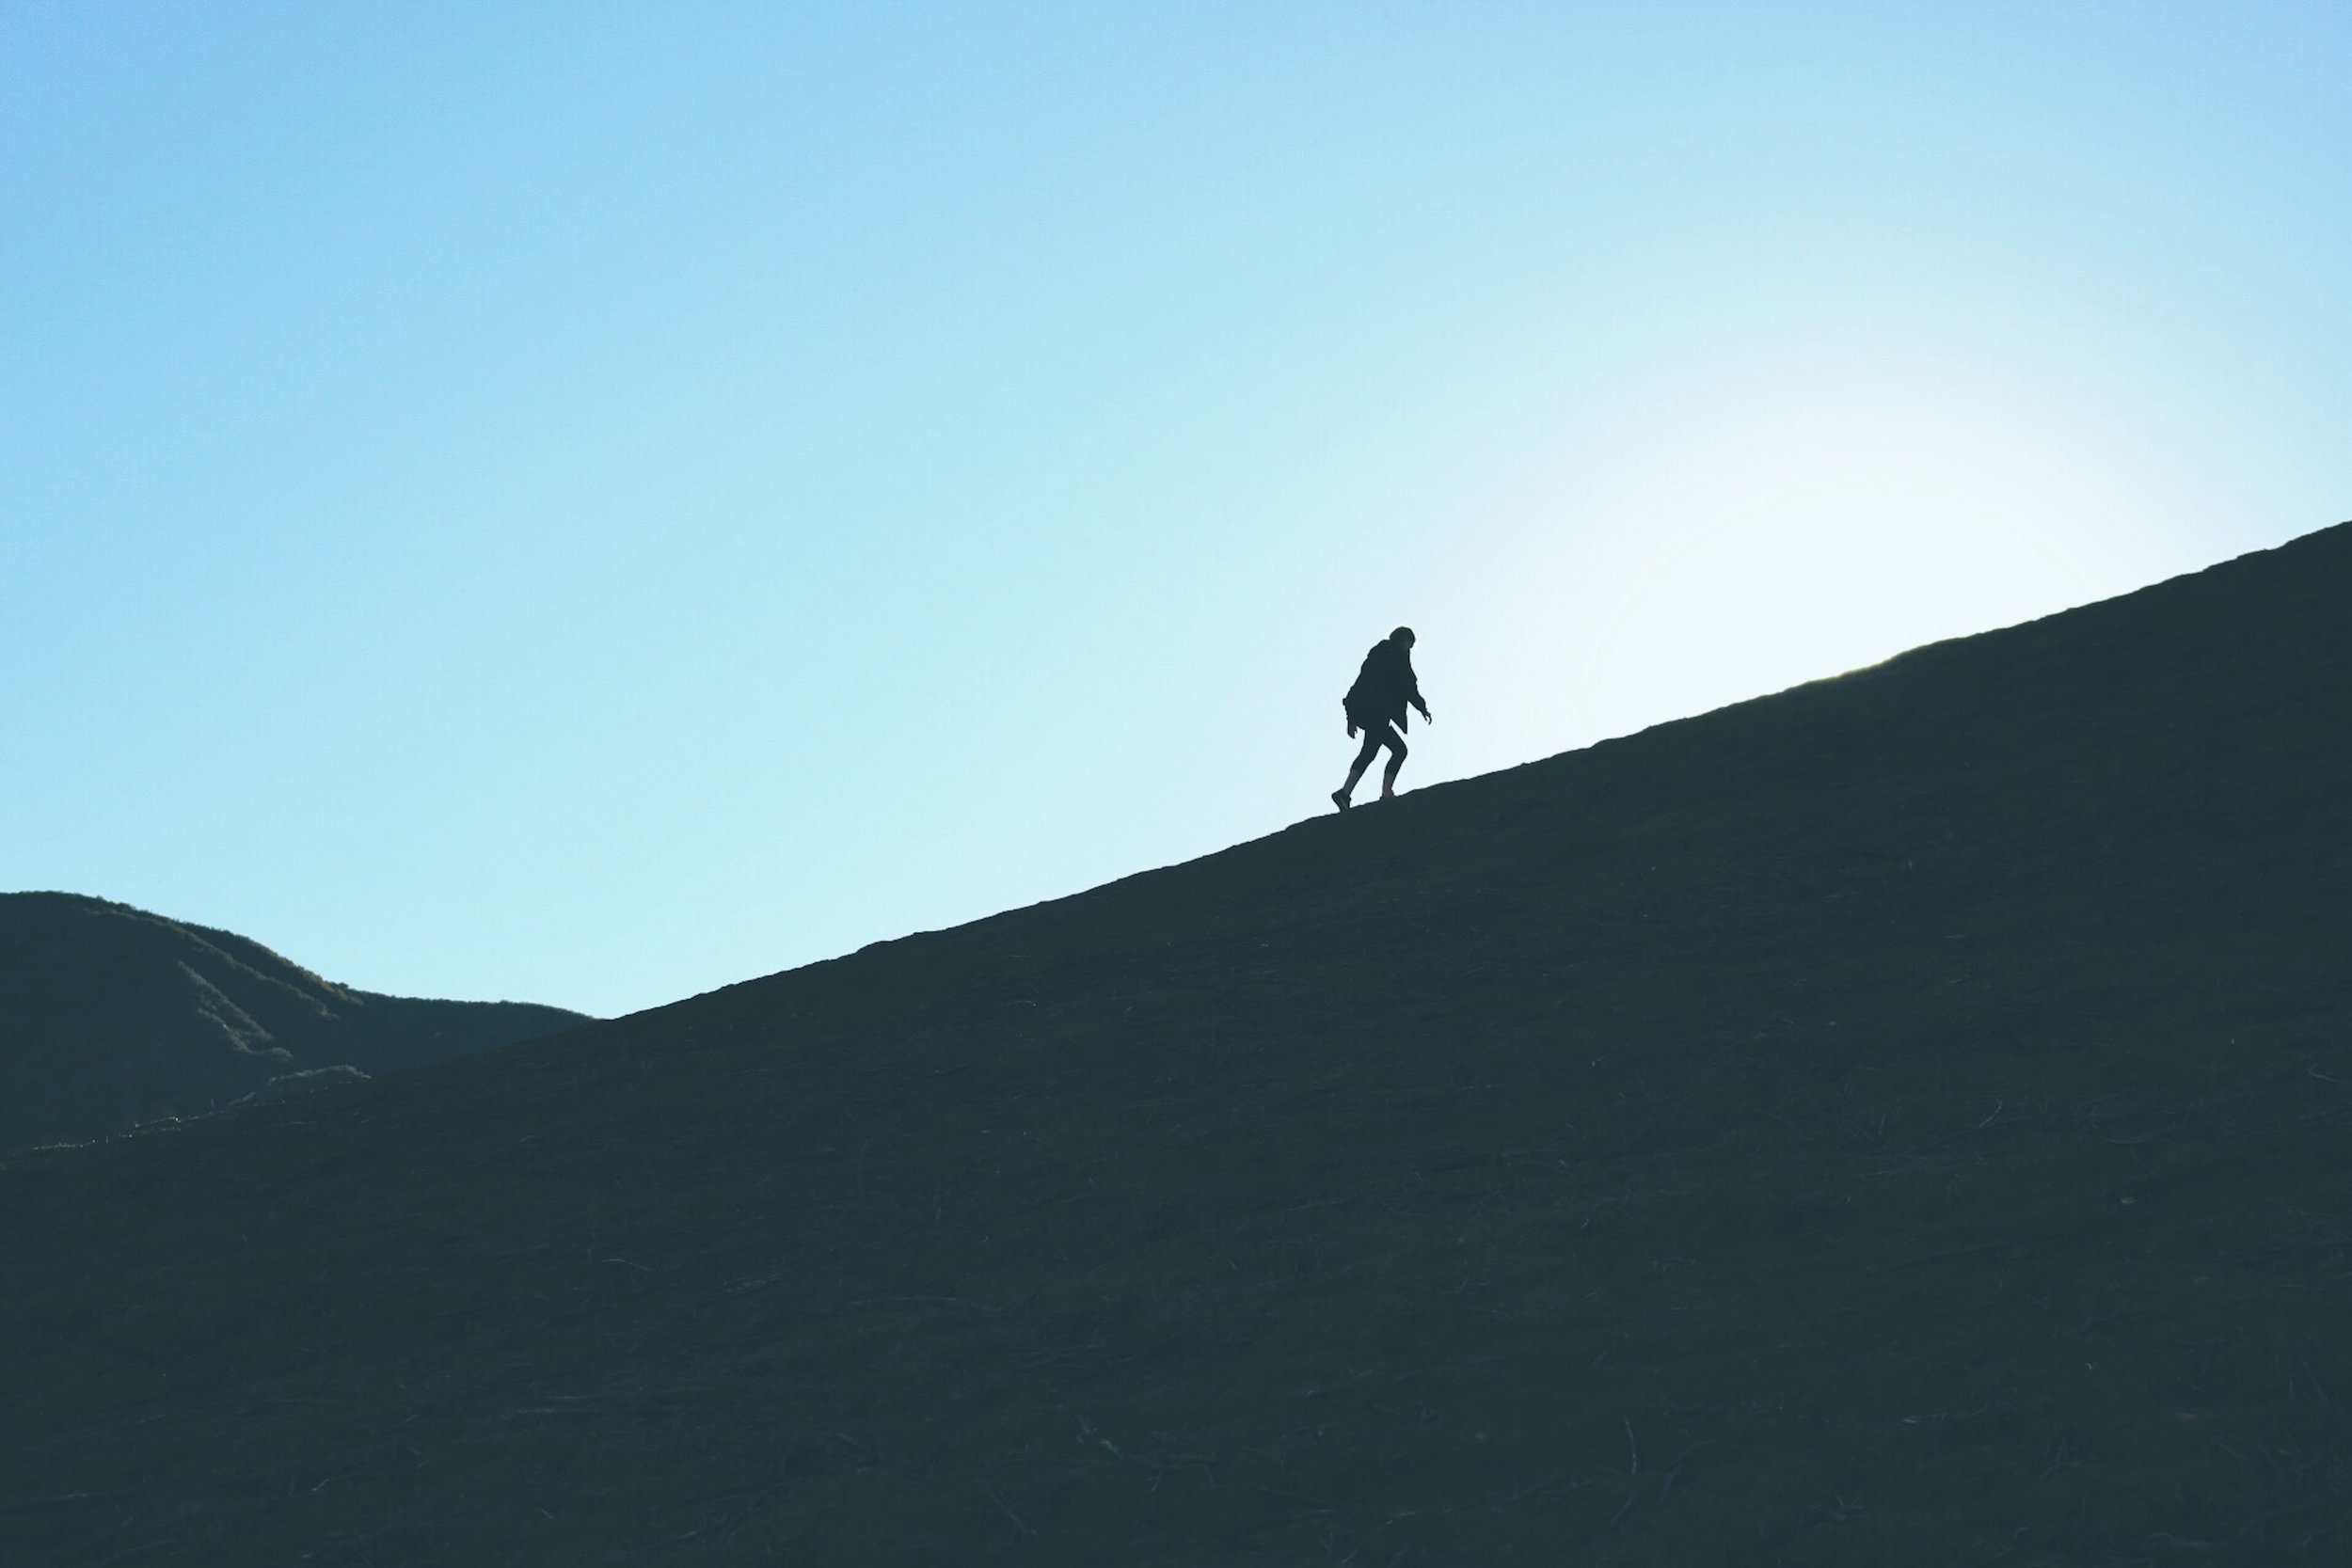 A founder's journey needs to be sustainble to achieve & maintain success.